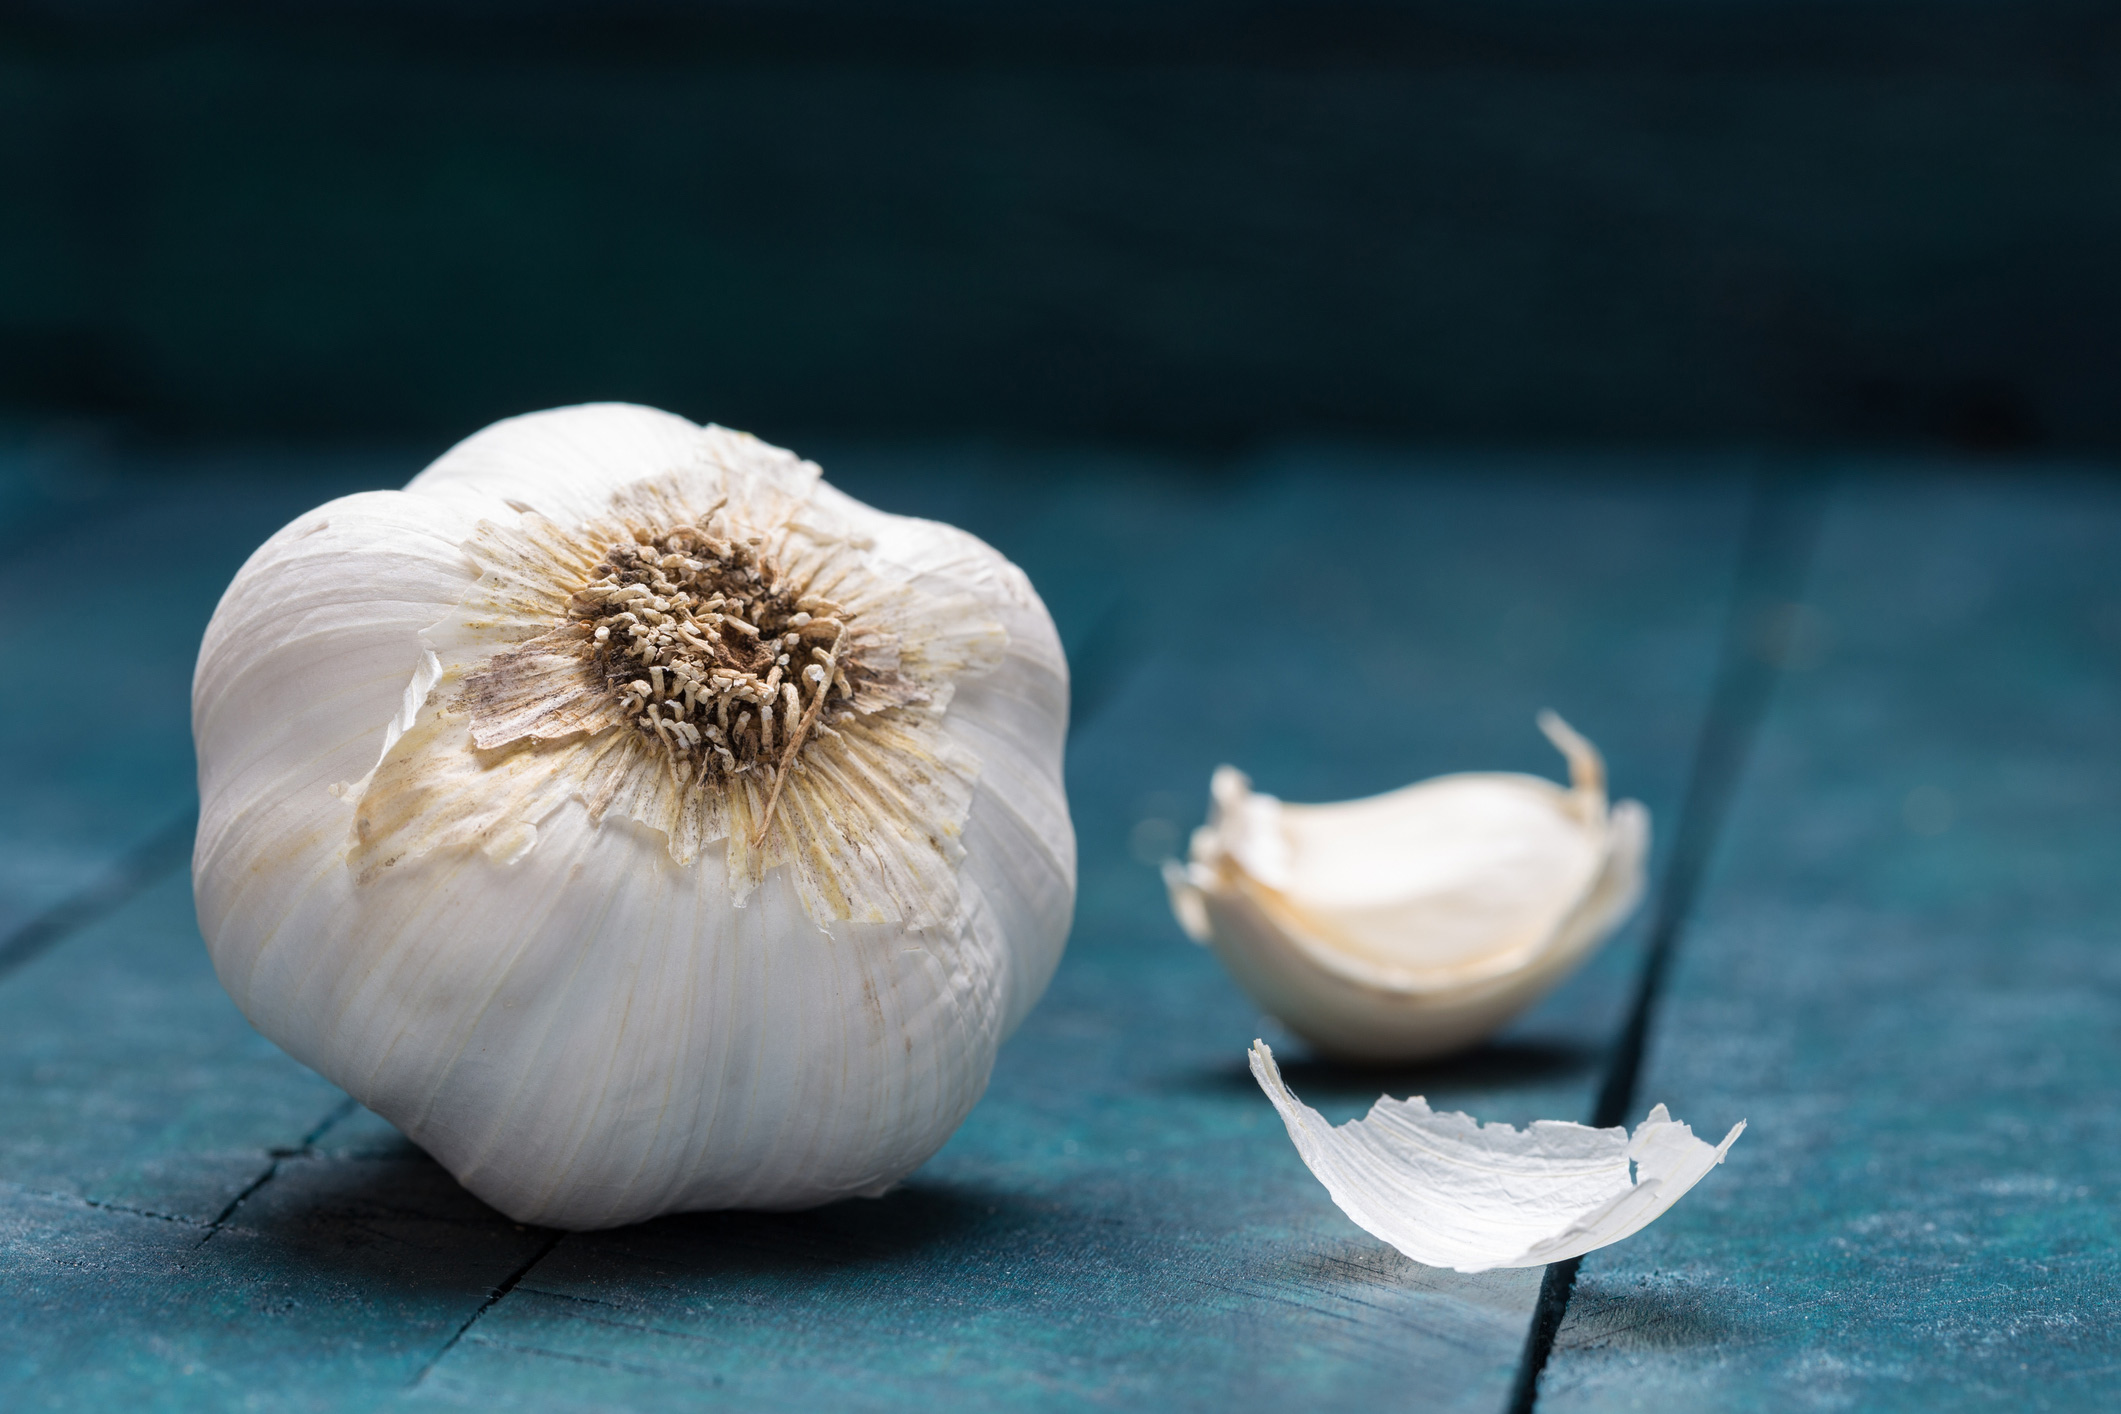 Allium vegetables: Garlic